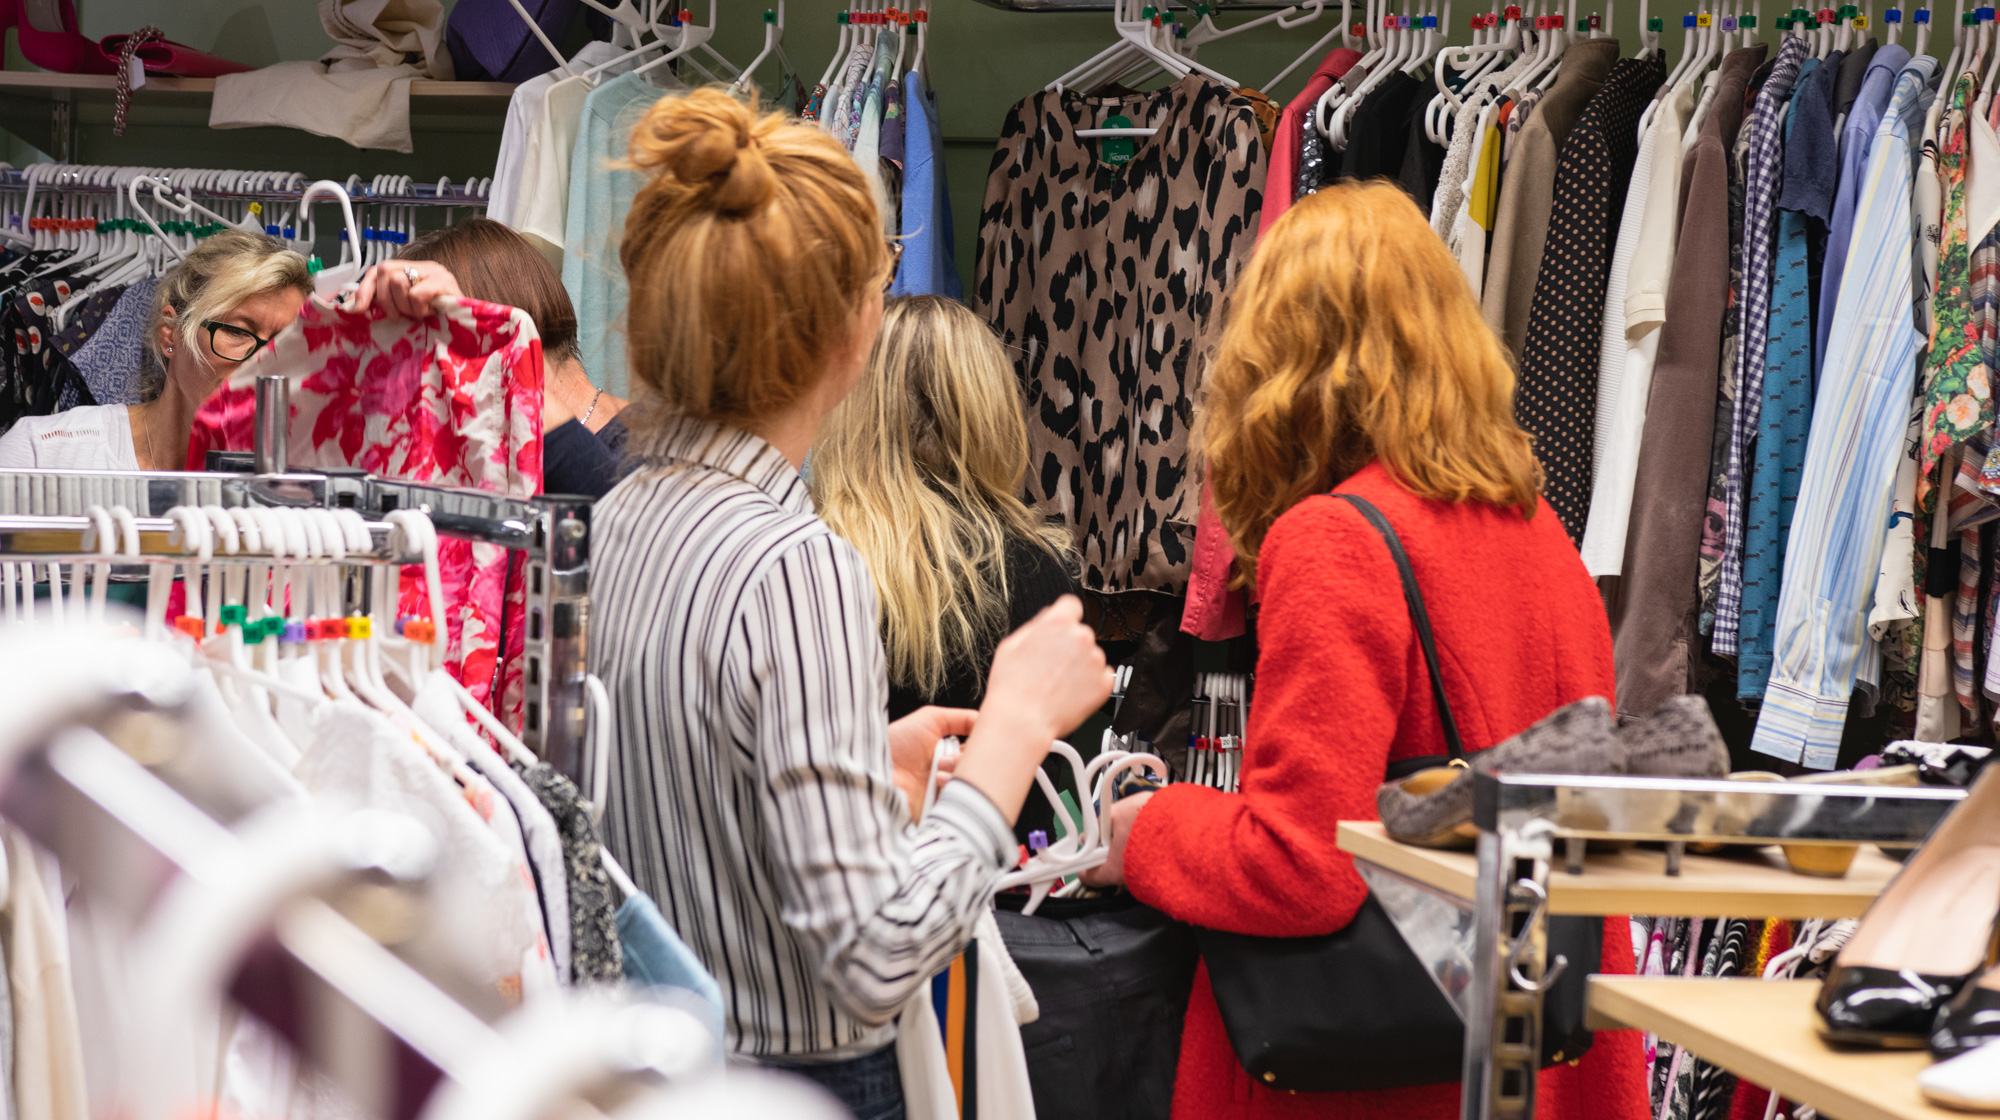 Shoppers in our camden road shop